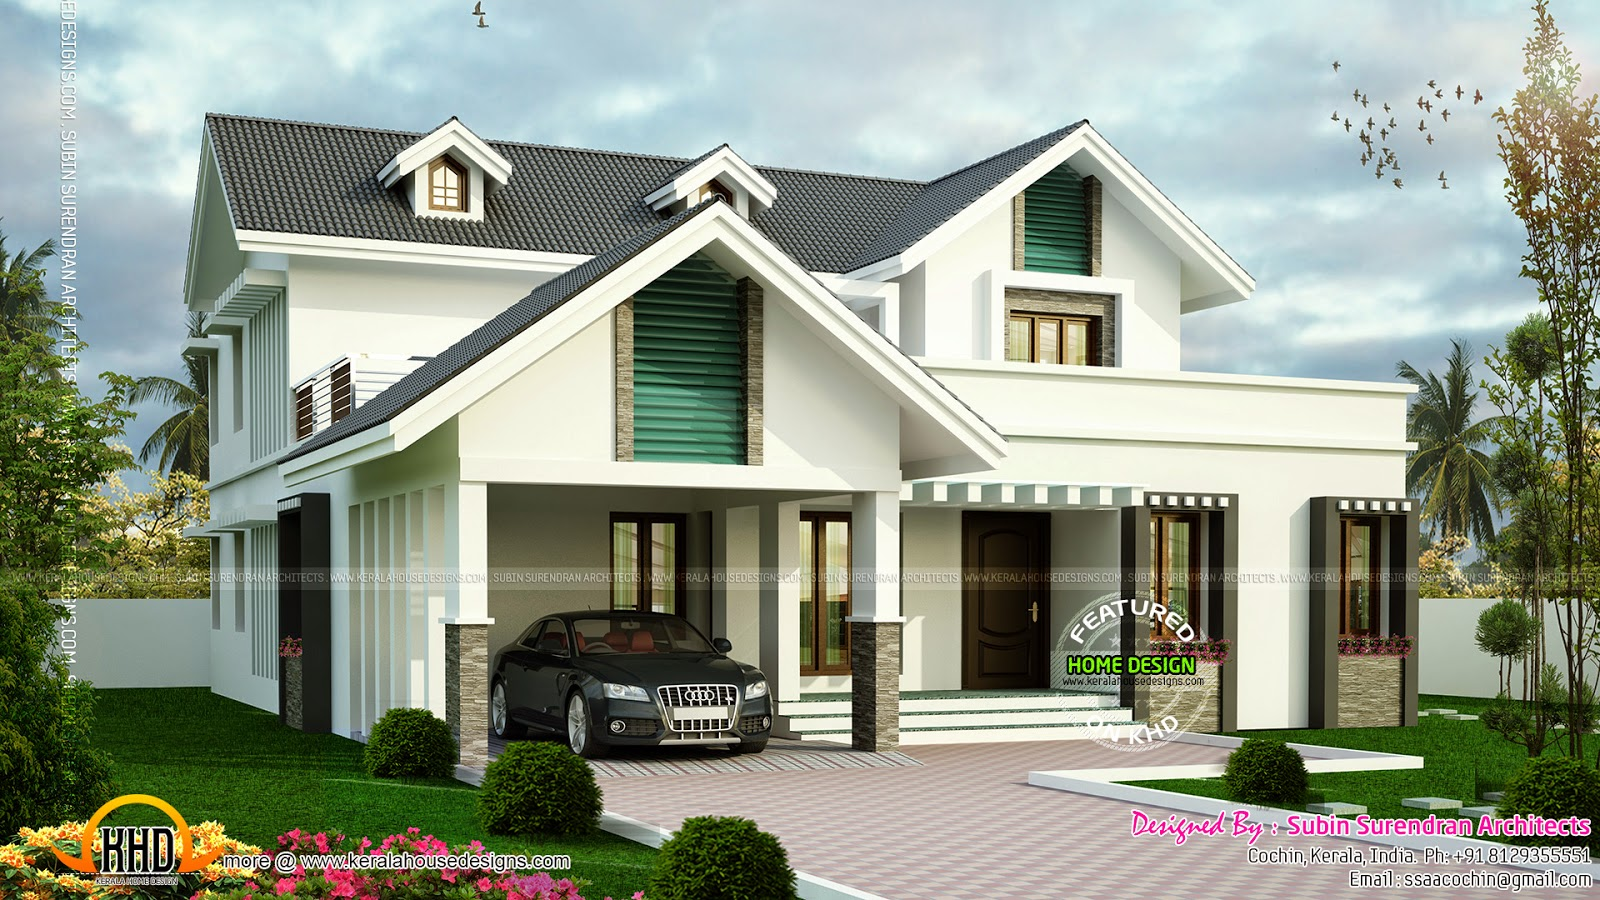 Modern Sloping Roof House With Dormer Windows Kerala